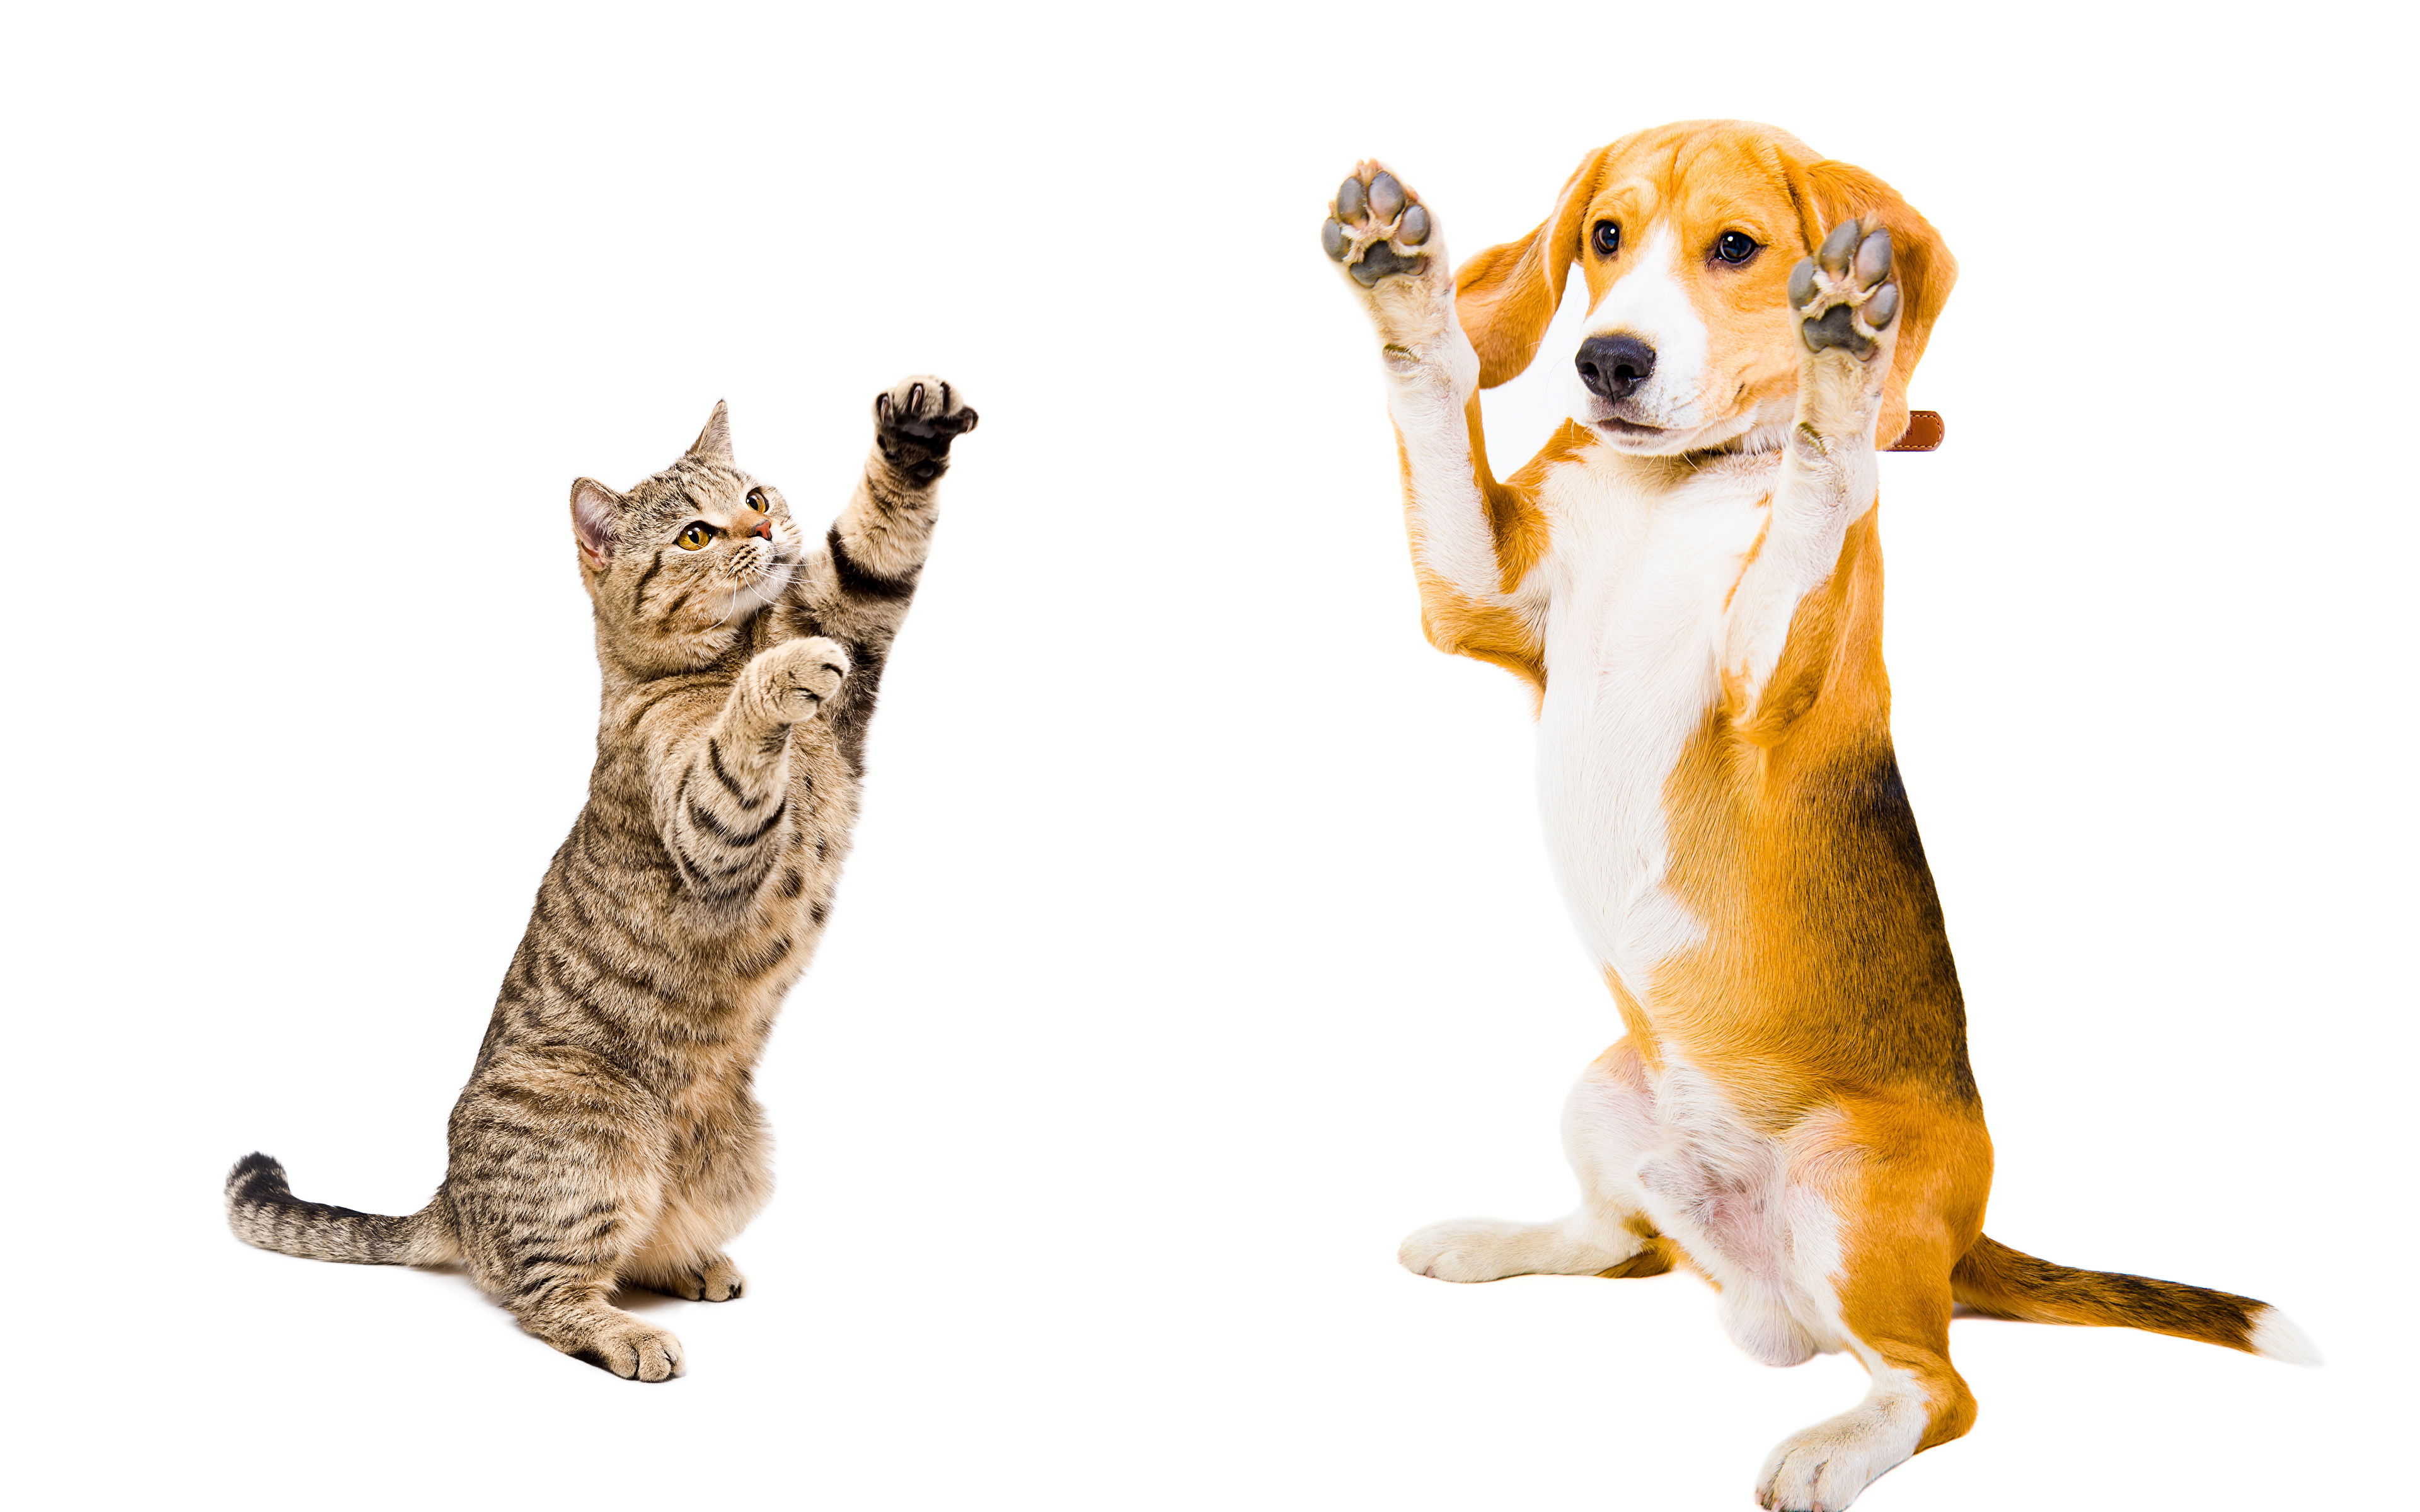 Images Beagle dog cat Two Animals White background 3840x2400 Dogs Cats 2 animal